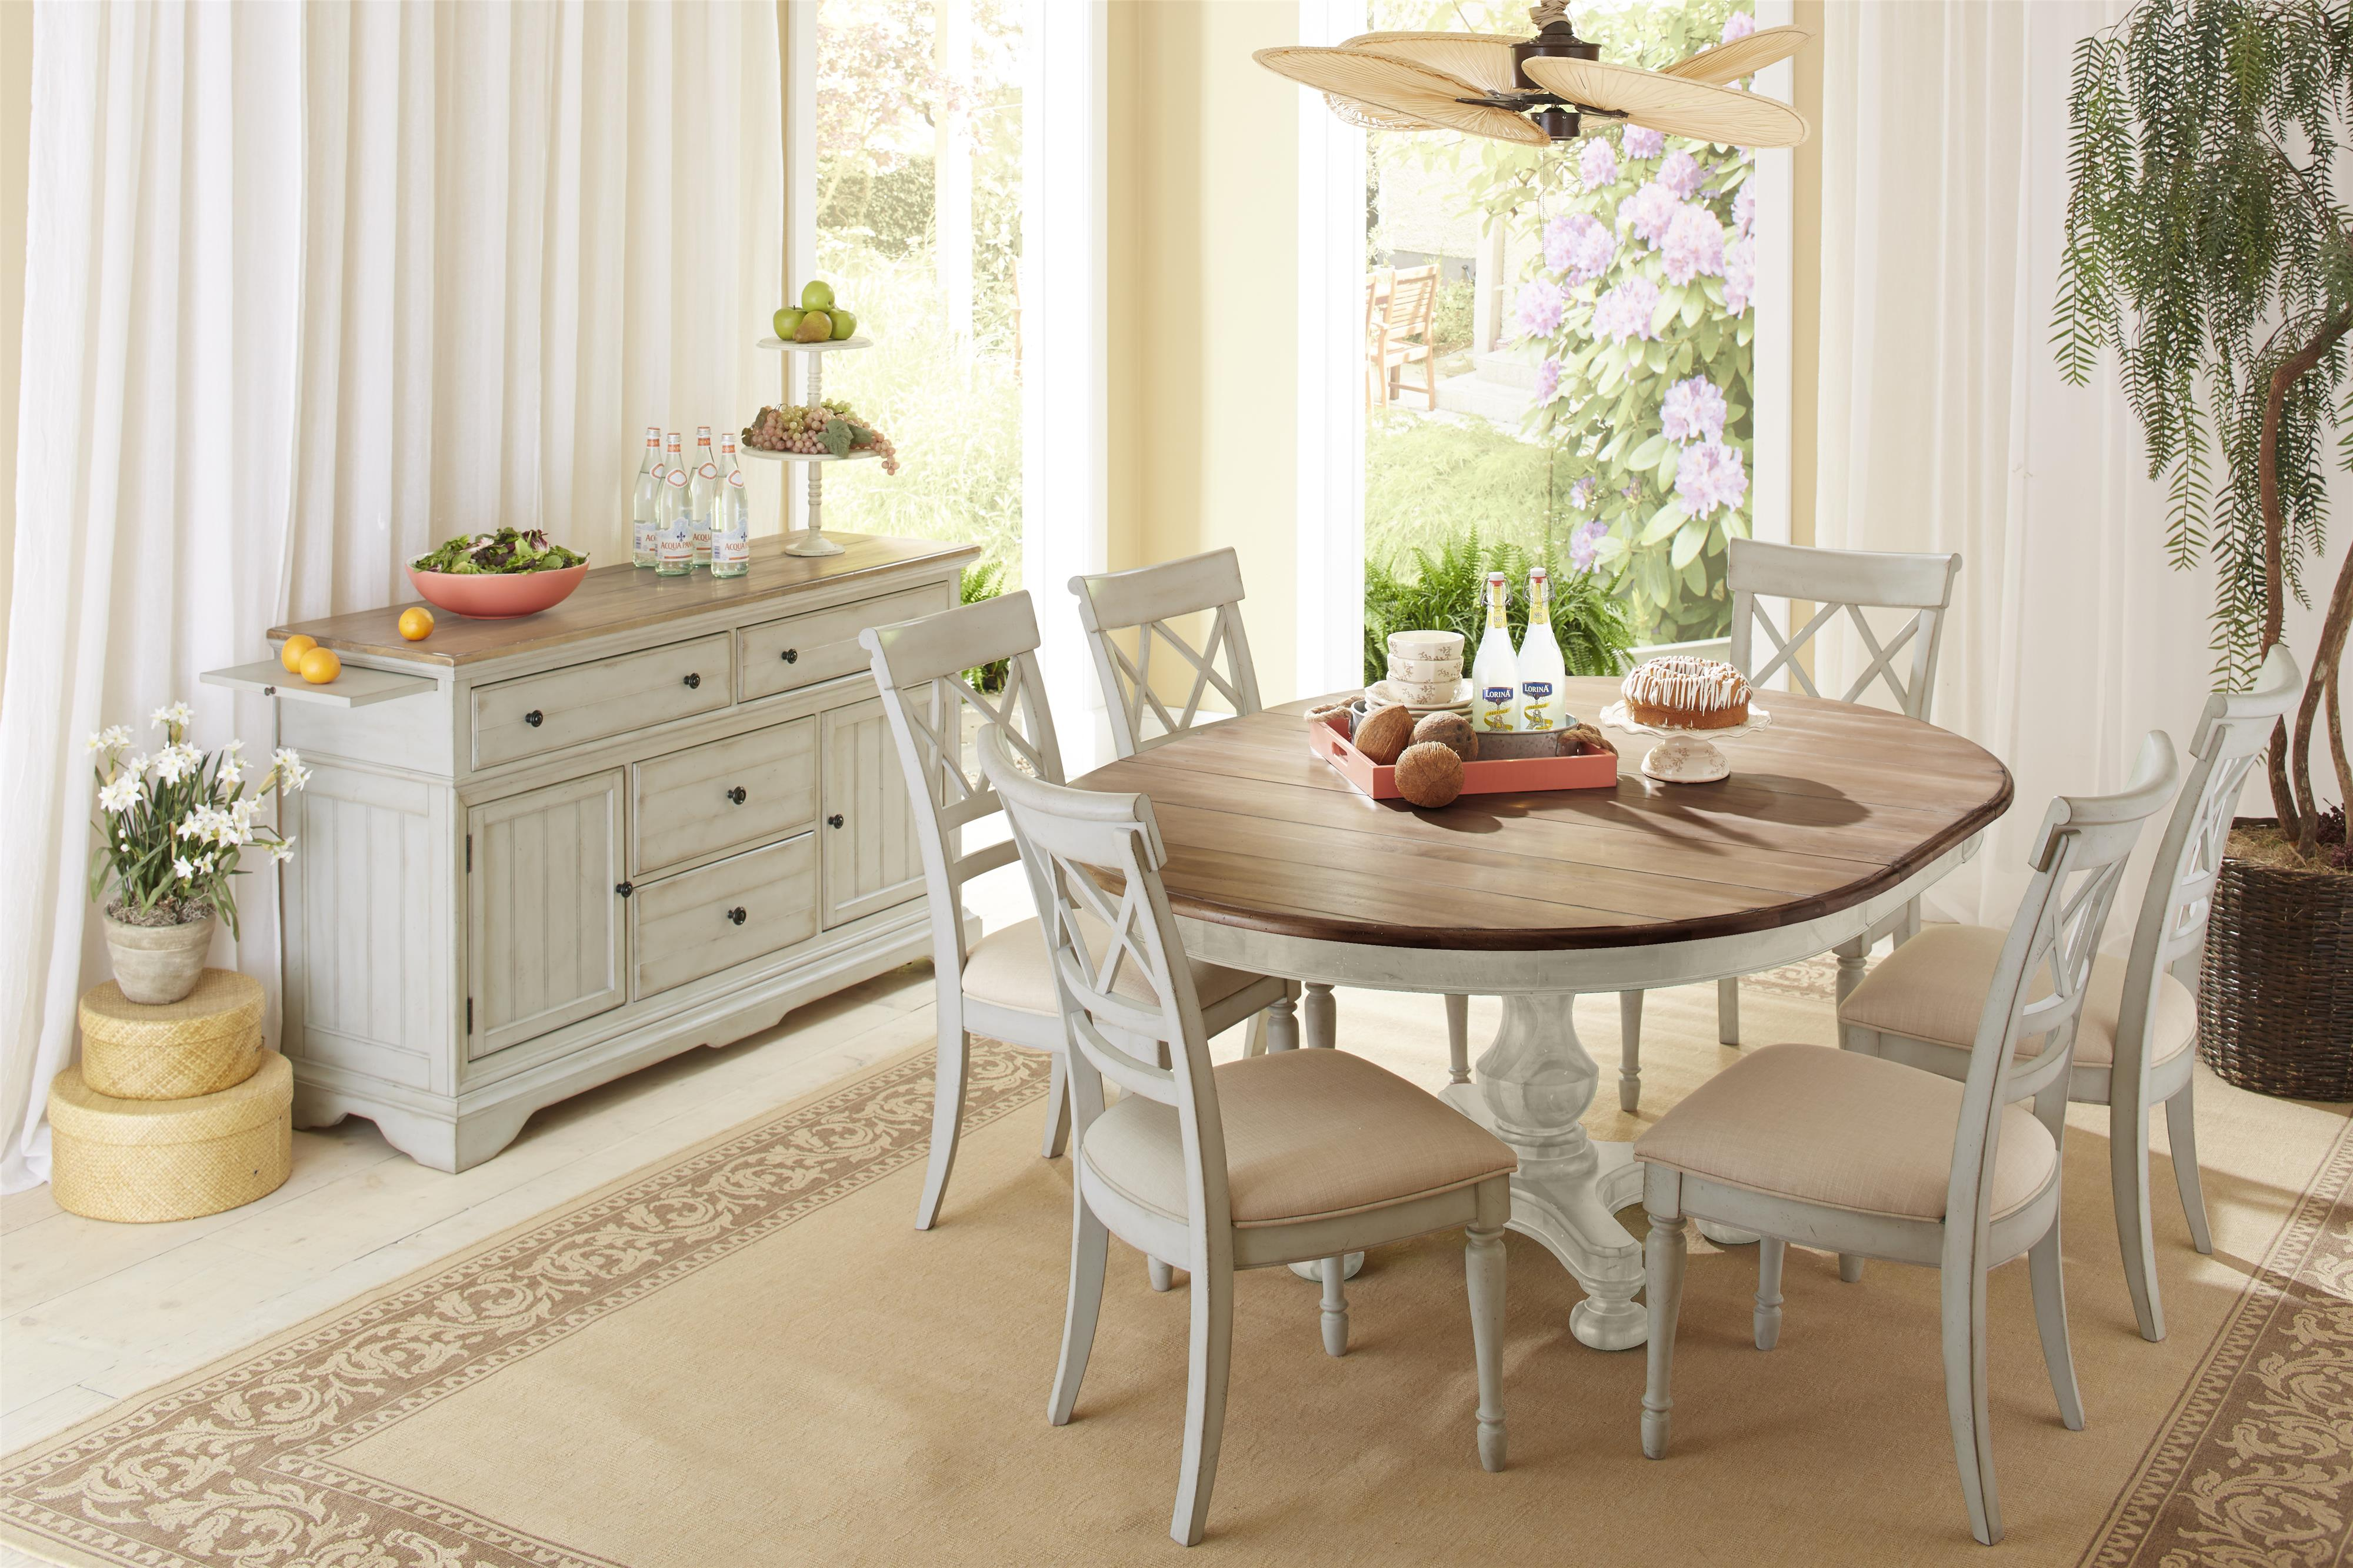 Cresent Fine Furniture Cottage Casual Dining Room Group - Item Number: 201 Dining Room Group 3